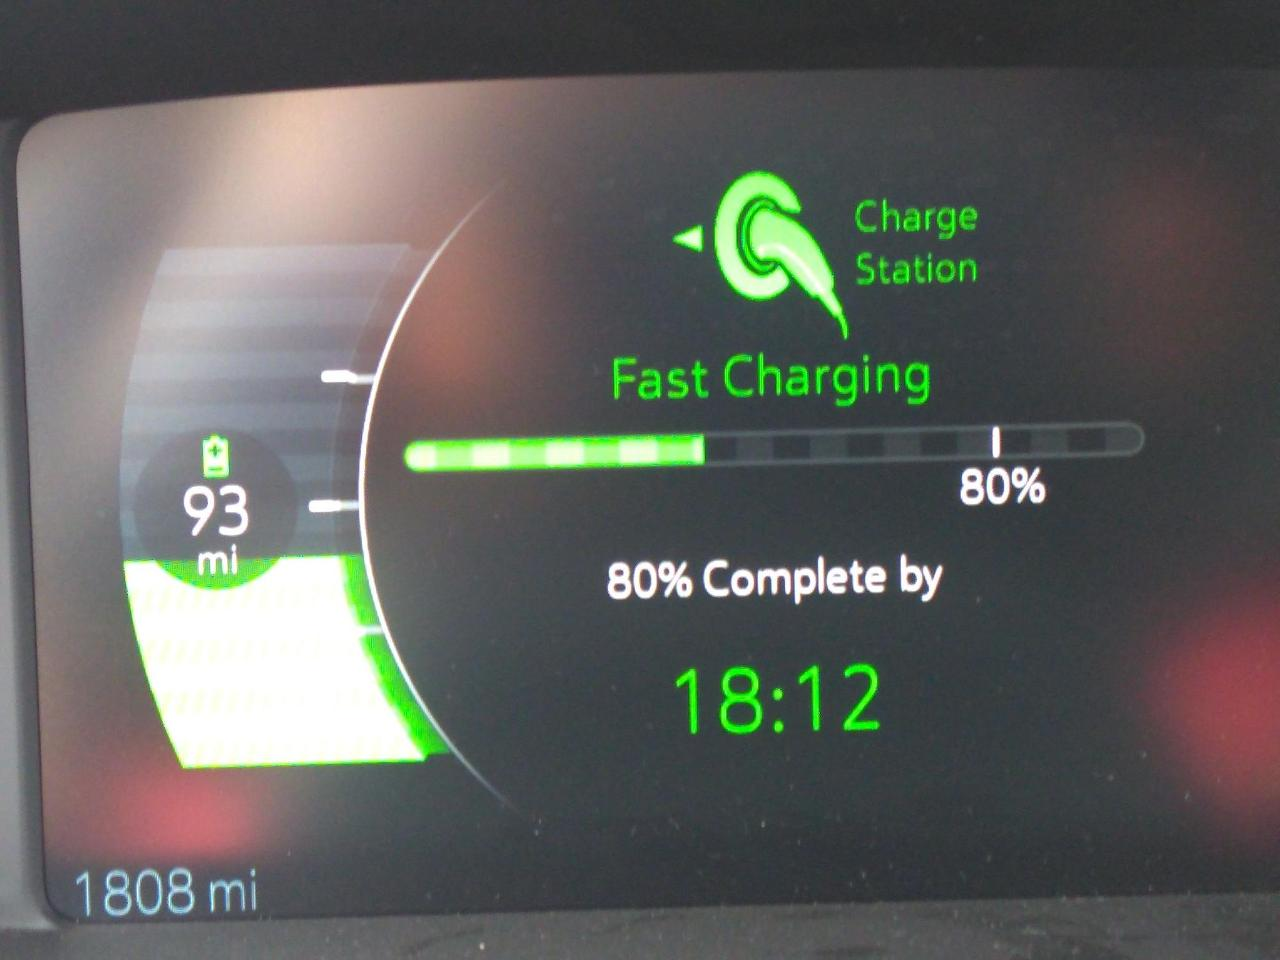 Fast Charging Station Screen